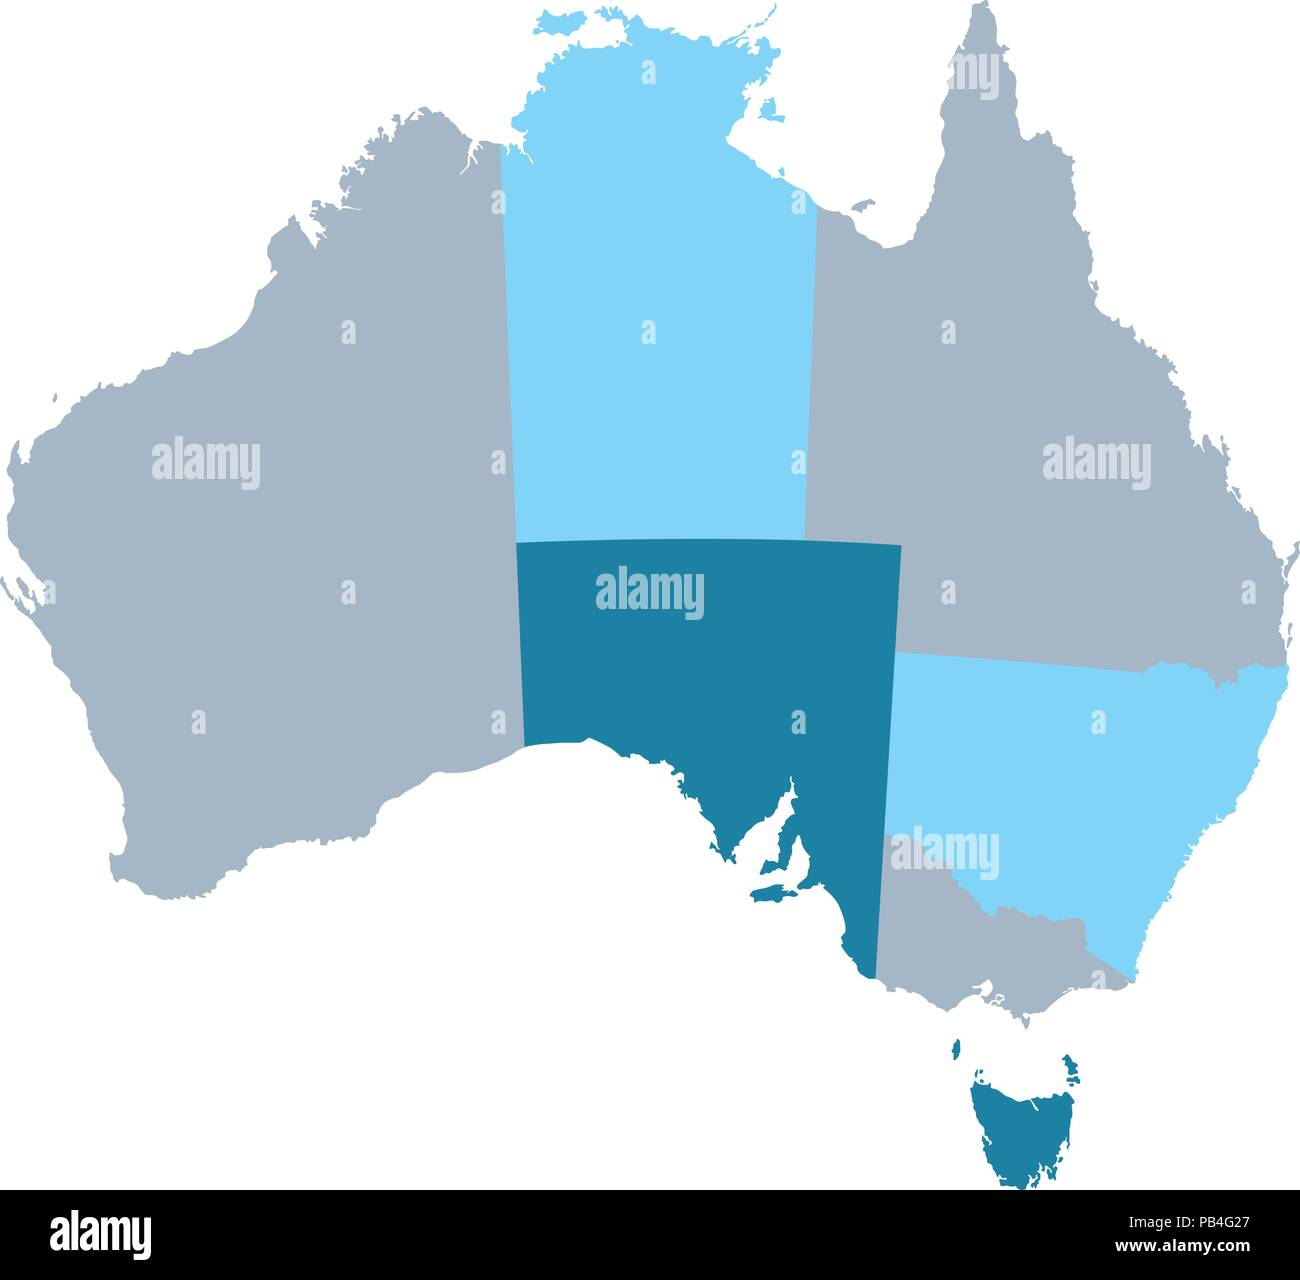 States And Territories Of Australia Map.Map Of Australia With States And Territories Stock Vector Art